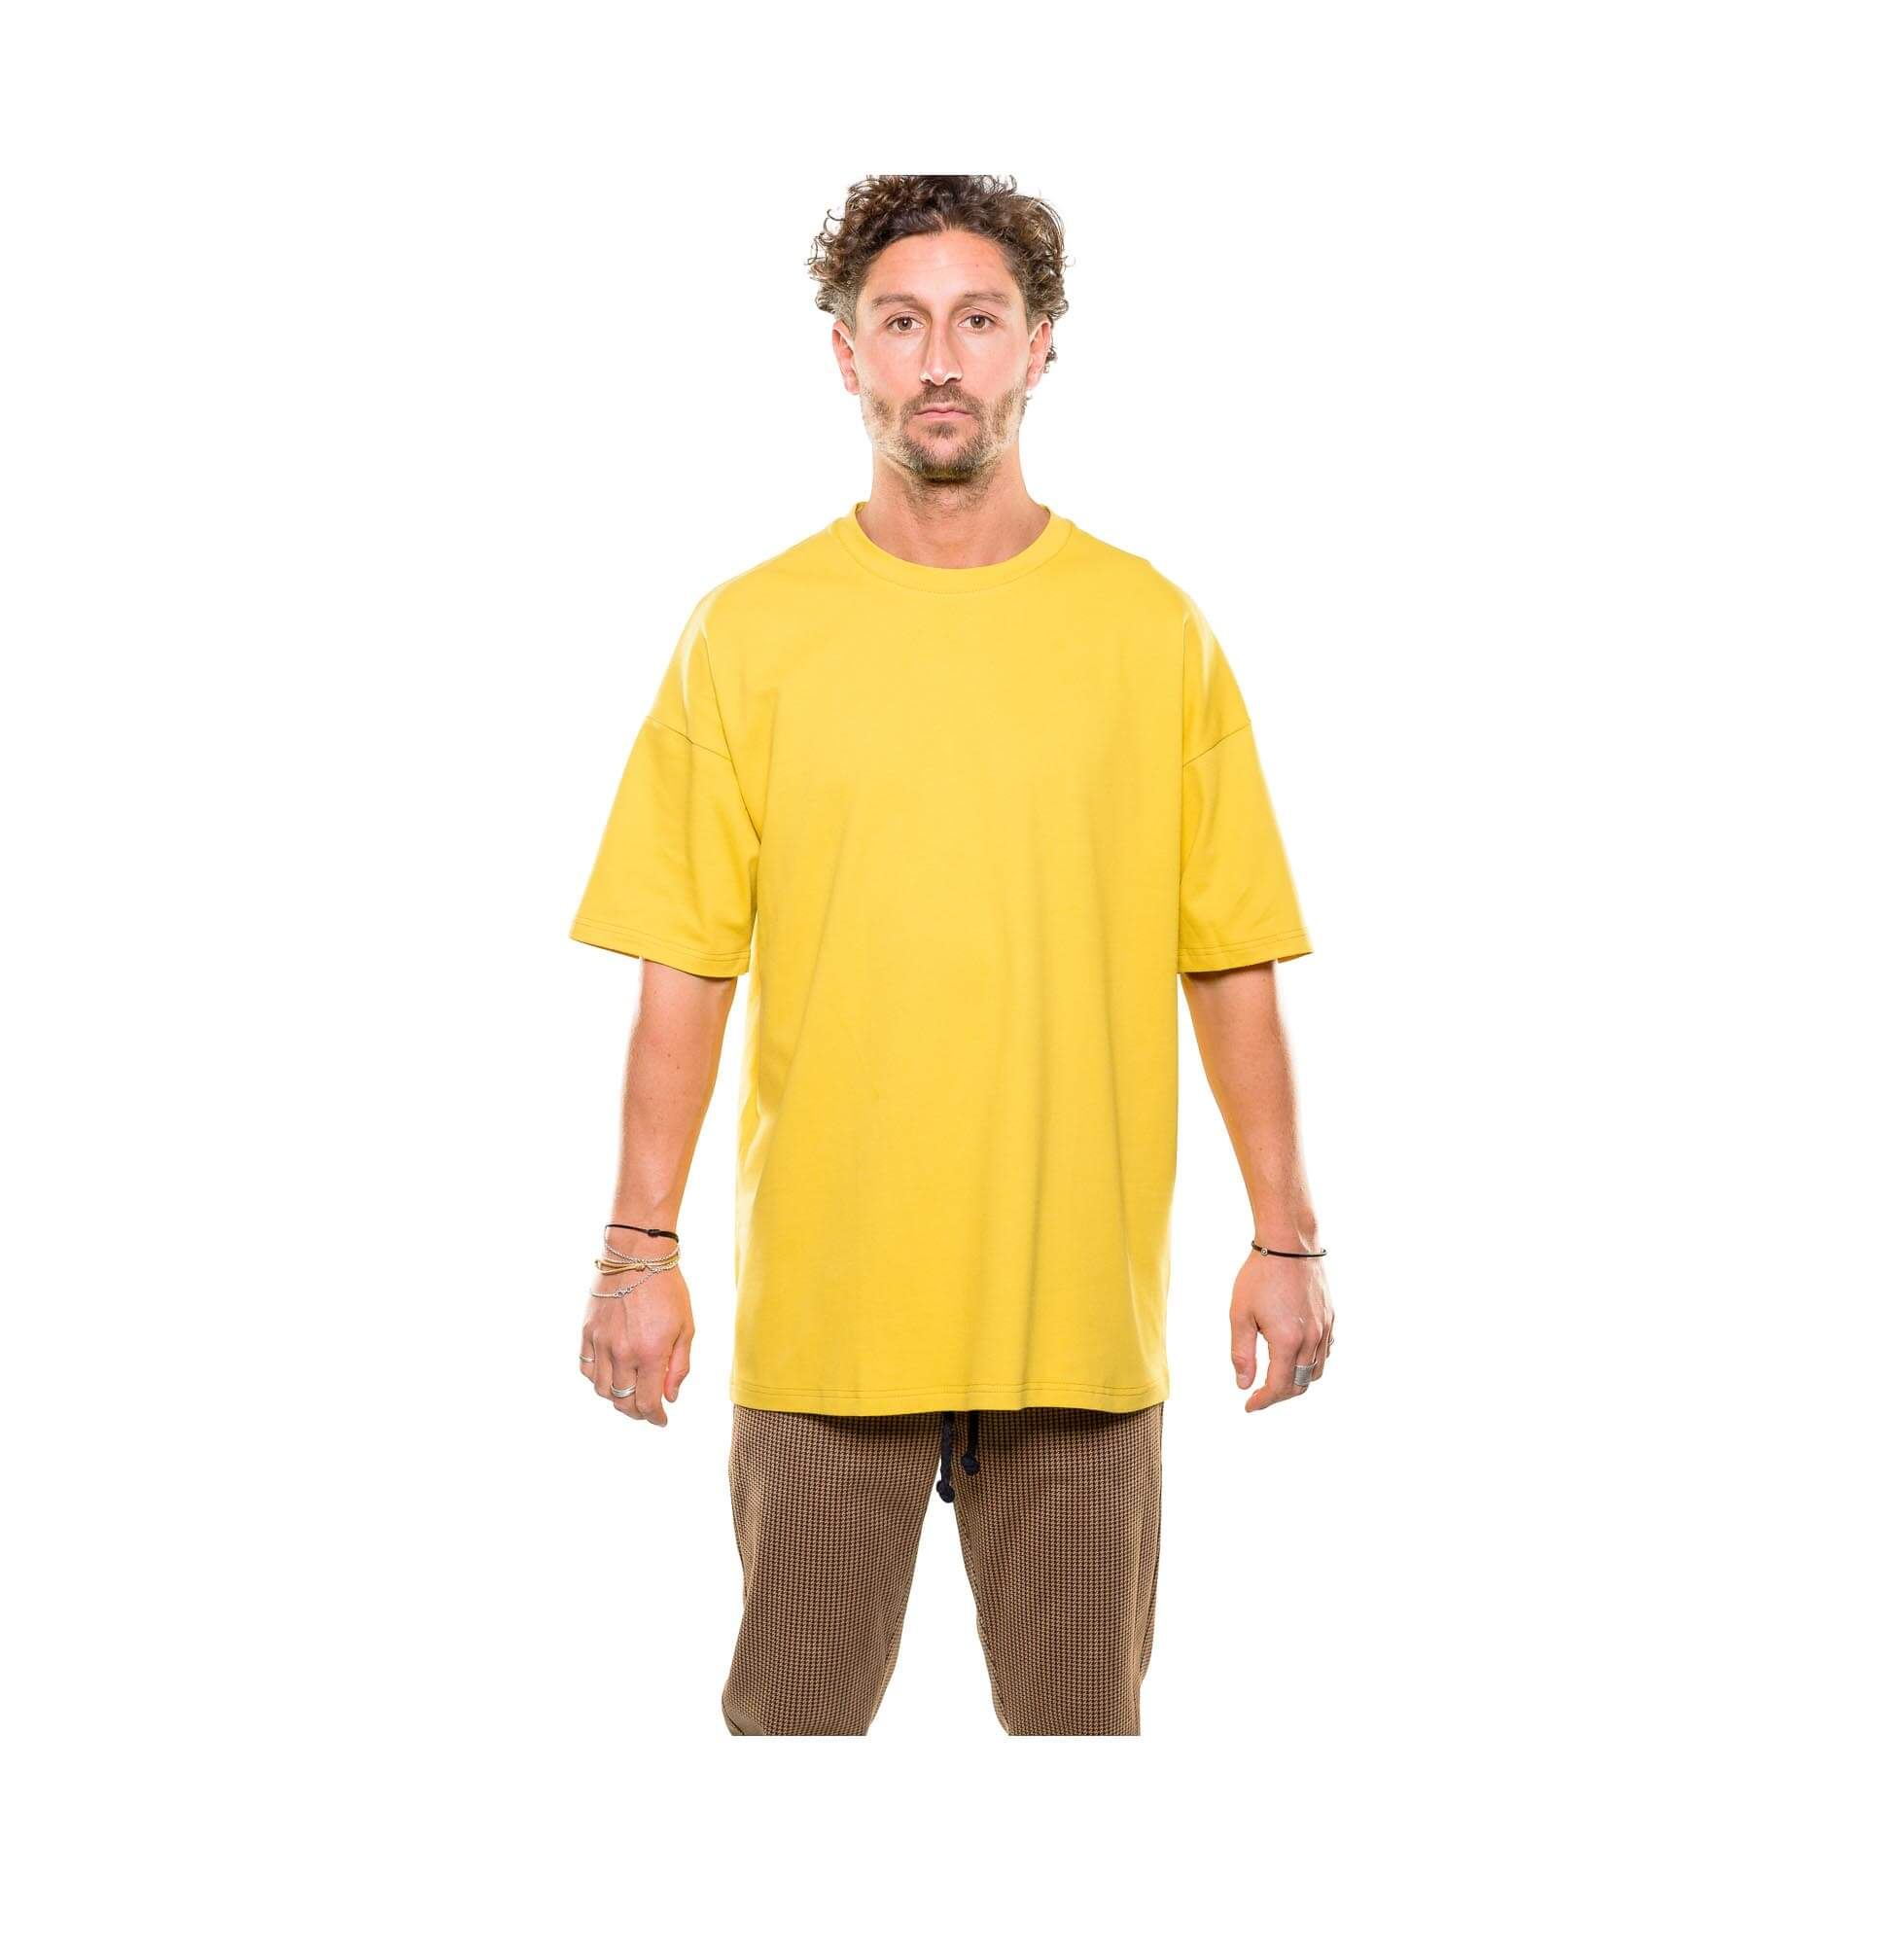 Drop tee yellow outfit